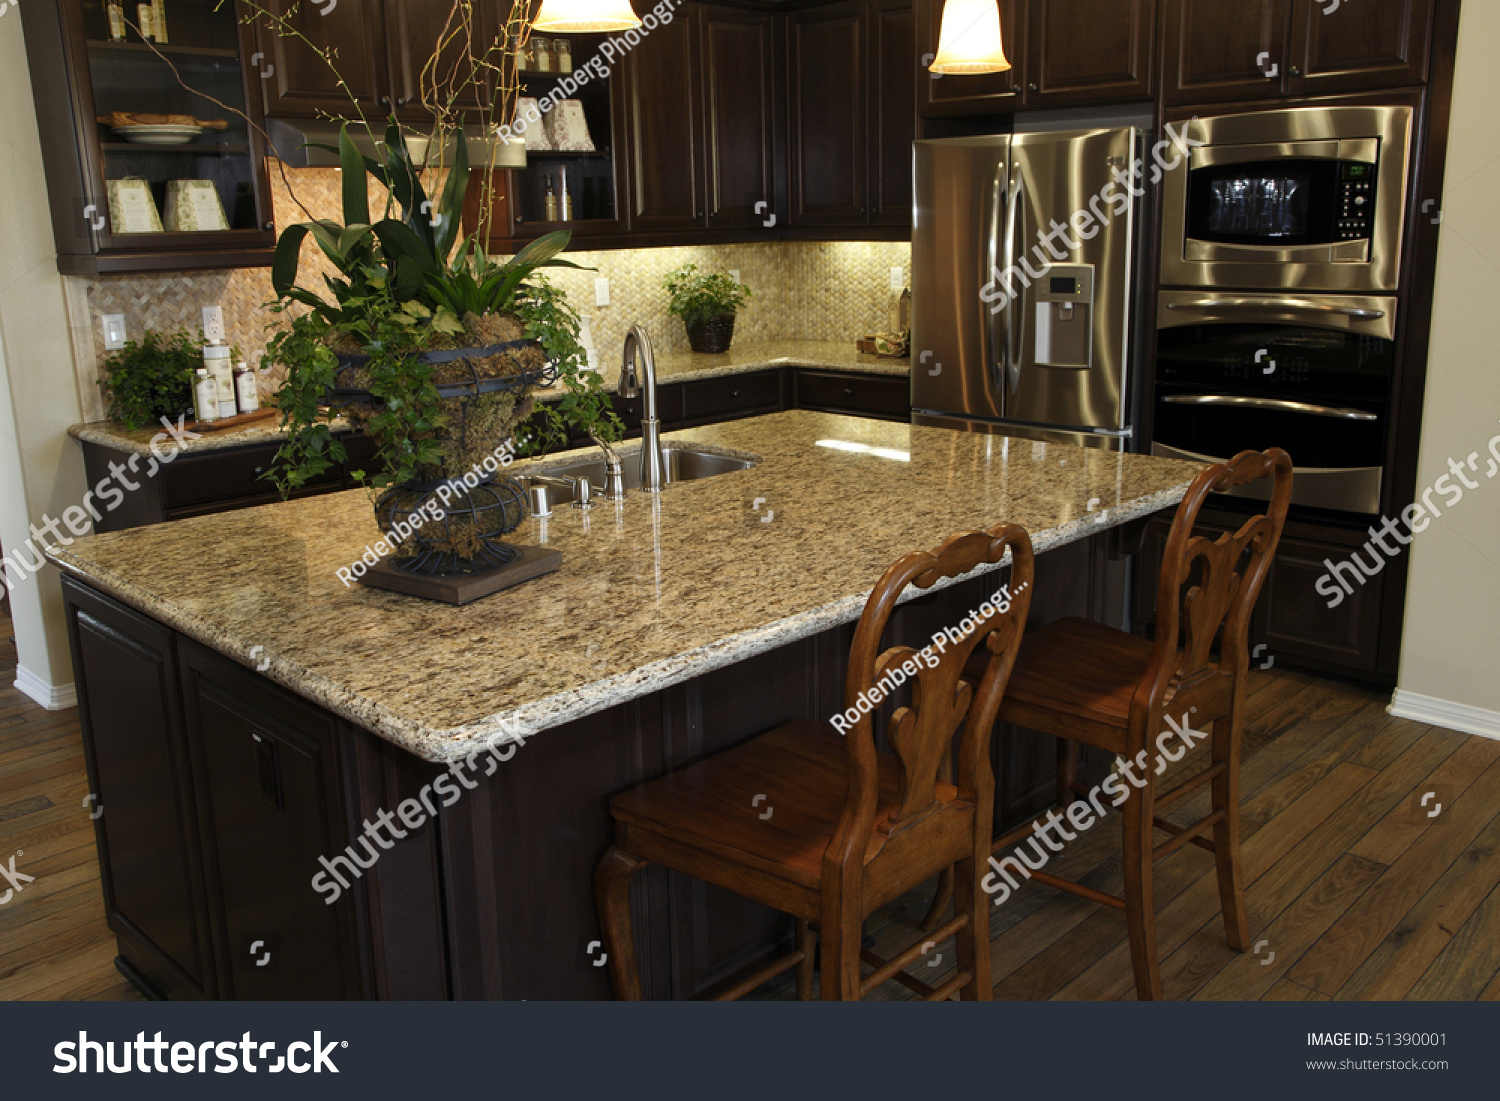 Uncategorized Designer Kitchen Appliances modern designer kitchen stainless steel appliances stock photo with and a granite island